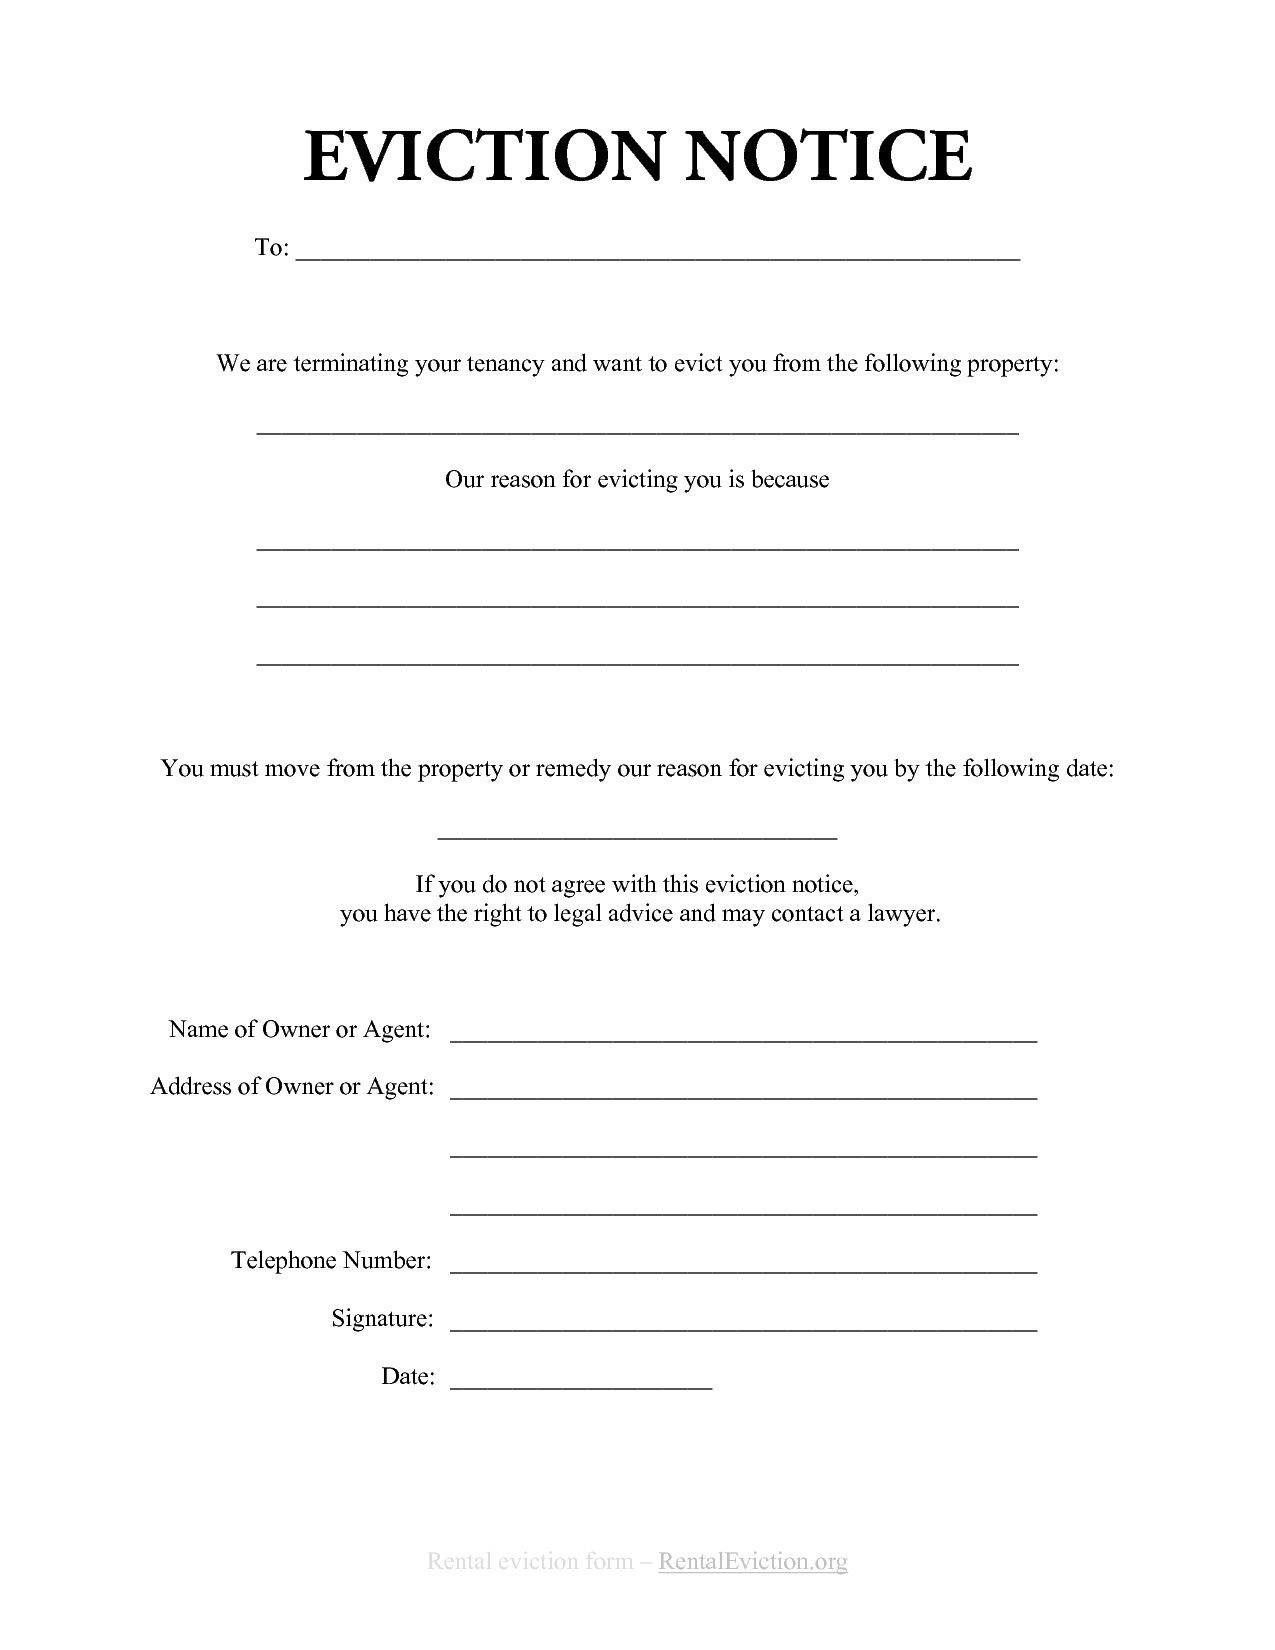 Termination Free Blank Eviction Notice Pdf